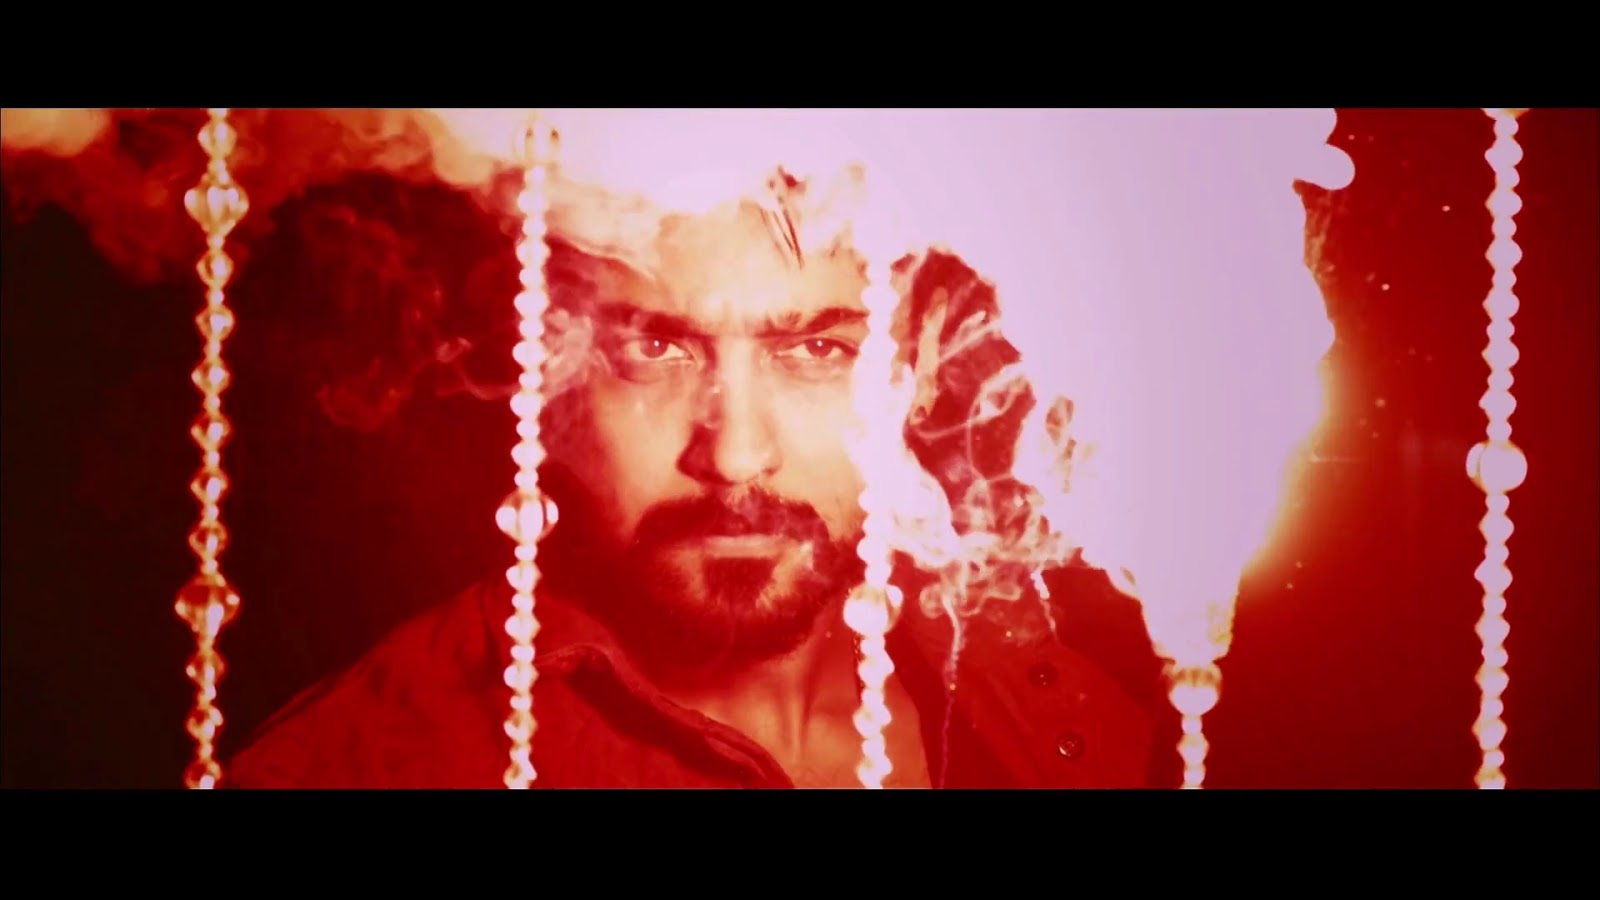 Surya Sikindar Stills In Hd Wallpapers: Anjaan Teaser Surya Photos And Teaser In HD